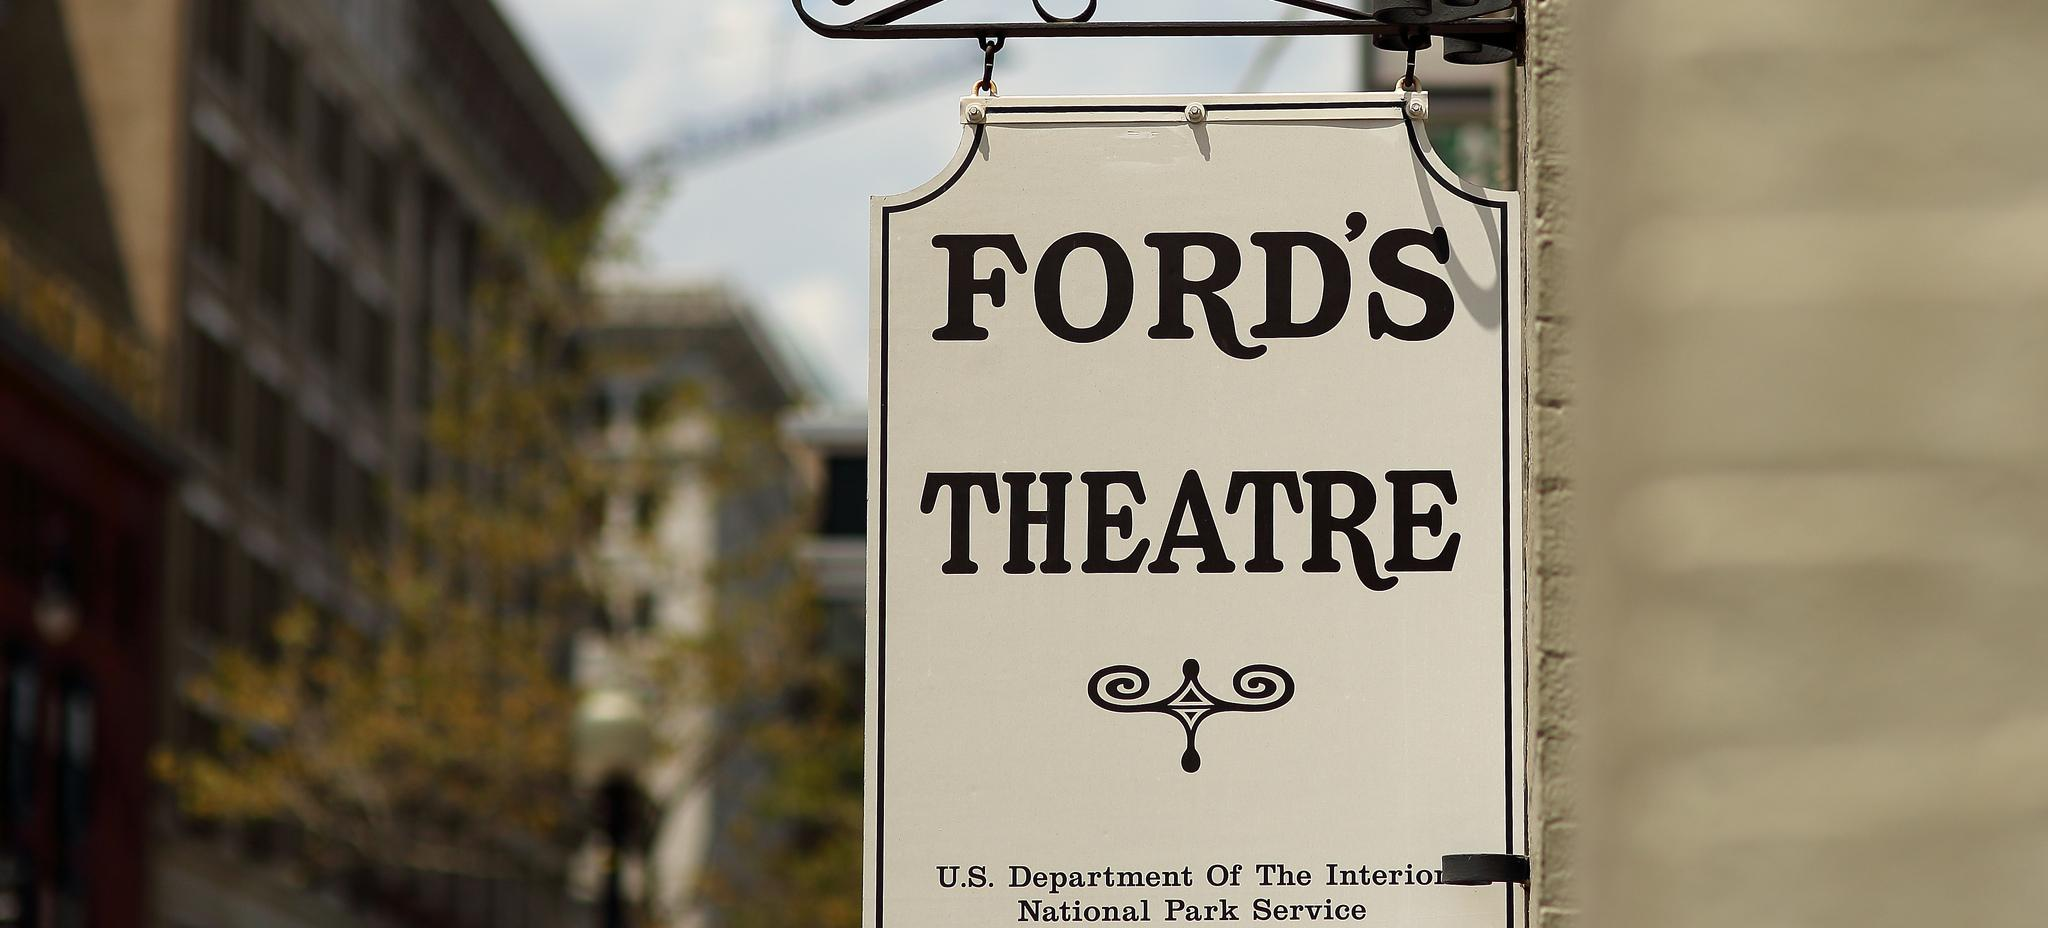 Ford's Theatre sign. Photo credit: Flick user @mr_t_in_dc Licensed via Creative Commons Attribution-NonCommercial-NoDerivs 2.0 Generic)